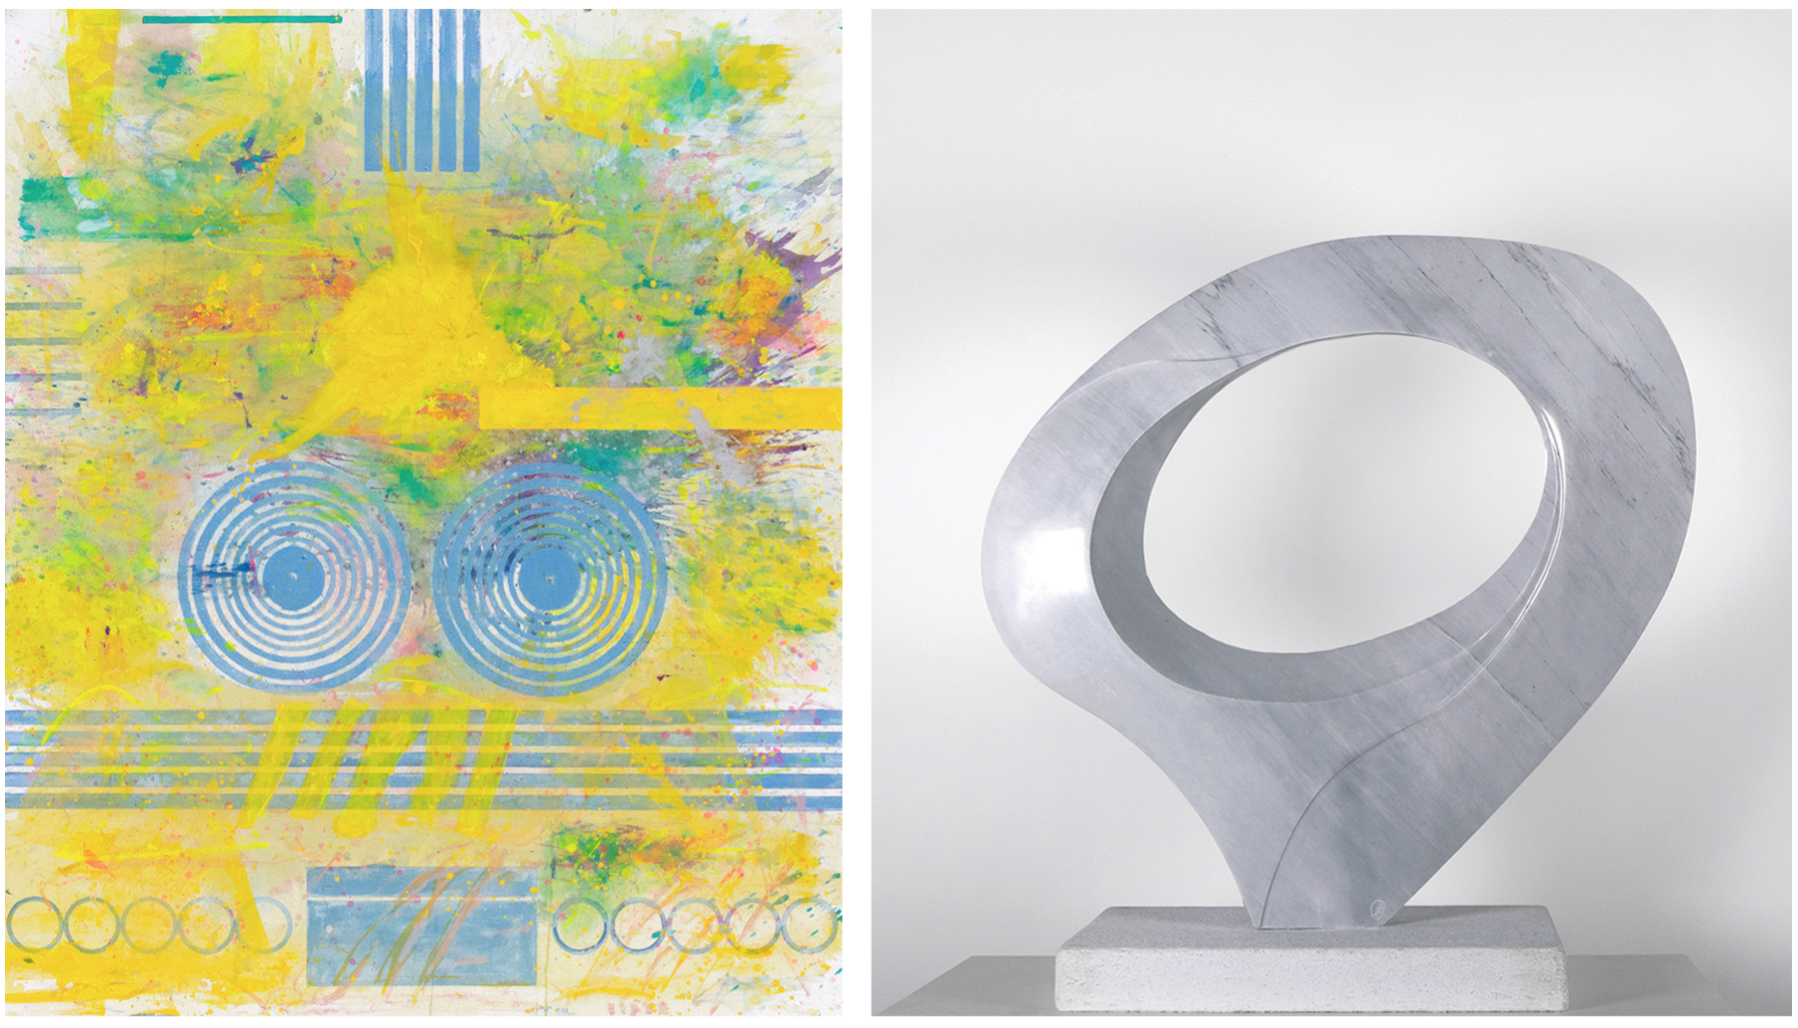 J. Steven Manolis & Miles Slater: Palm Beach Light - On view: April 4 – May 5, 2019